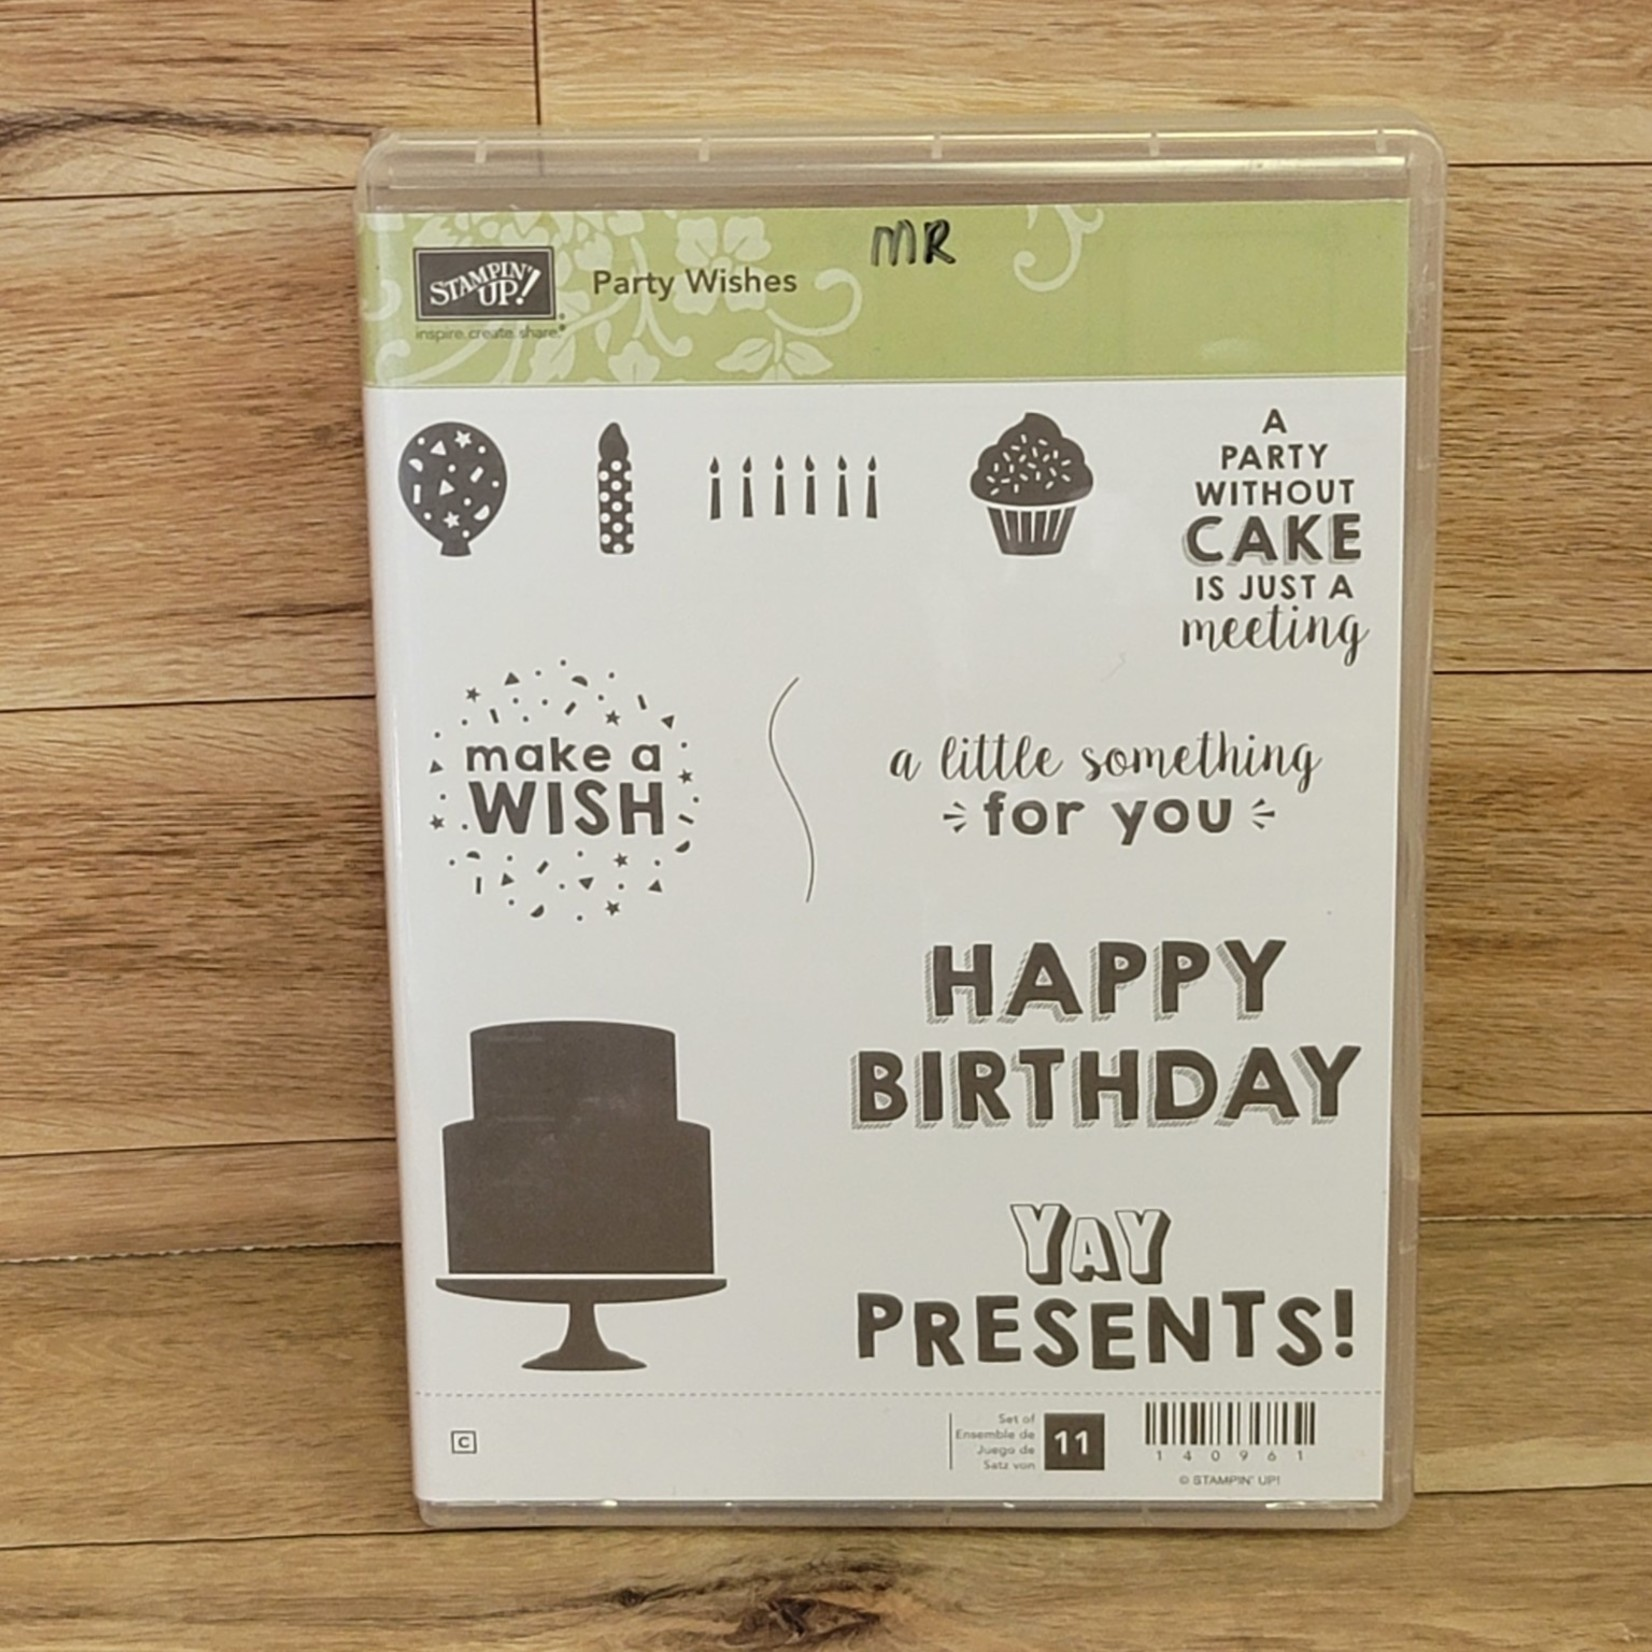 Stampin' Up Stampin Up - Rubber cling stamps - Party Wishes